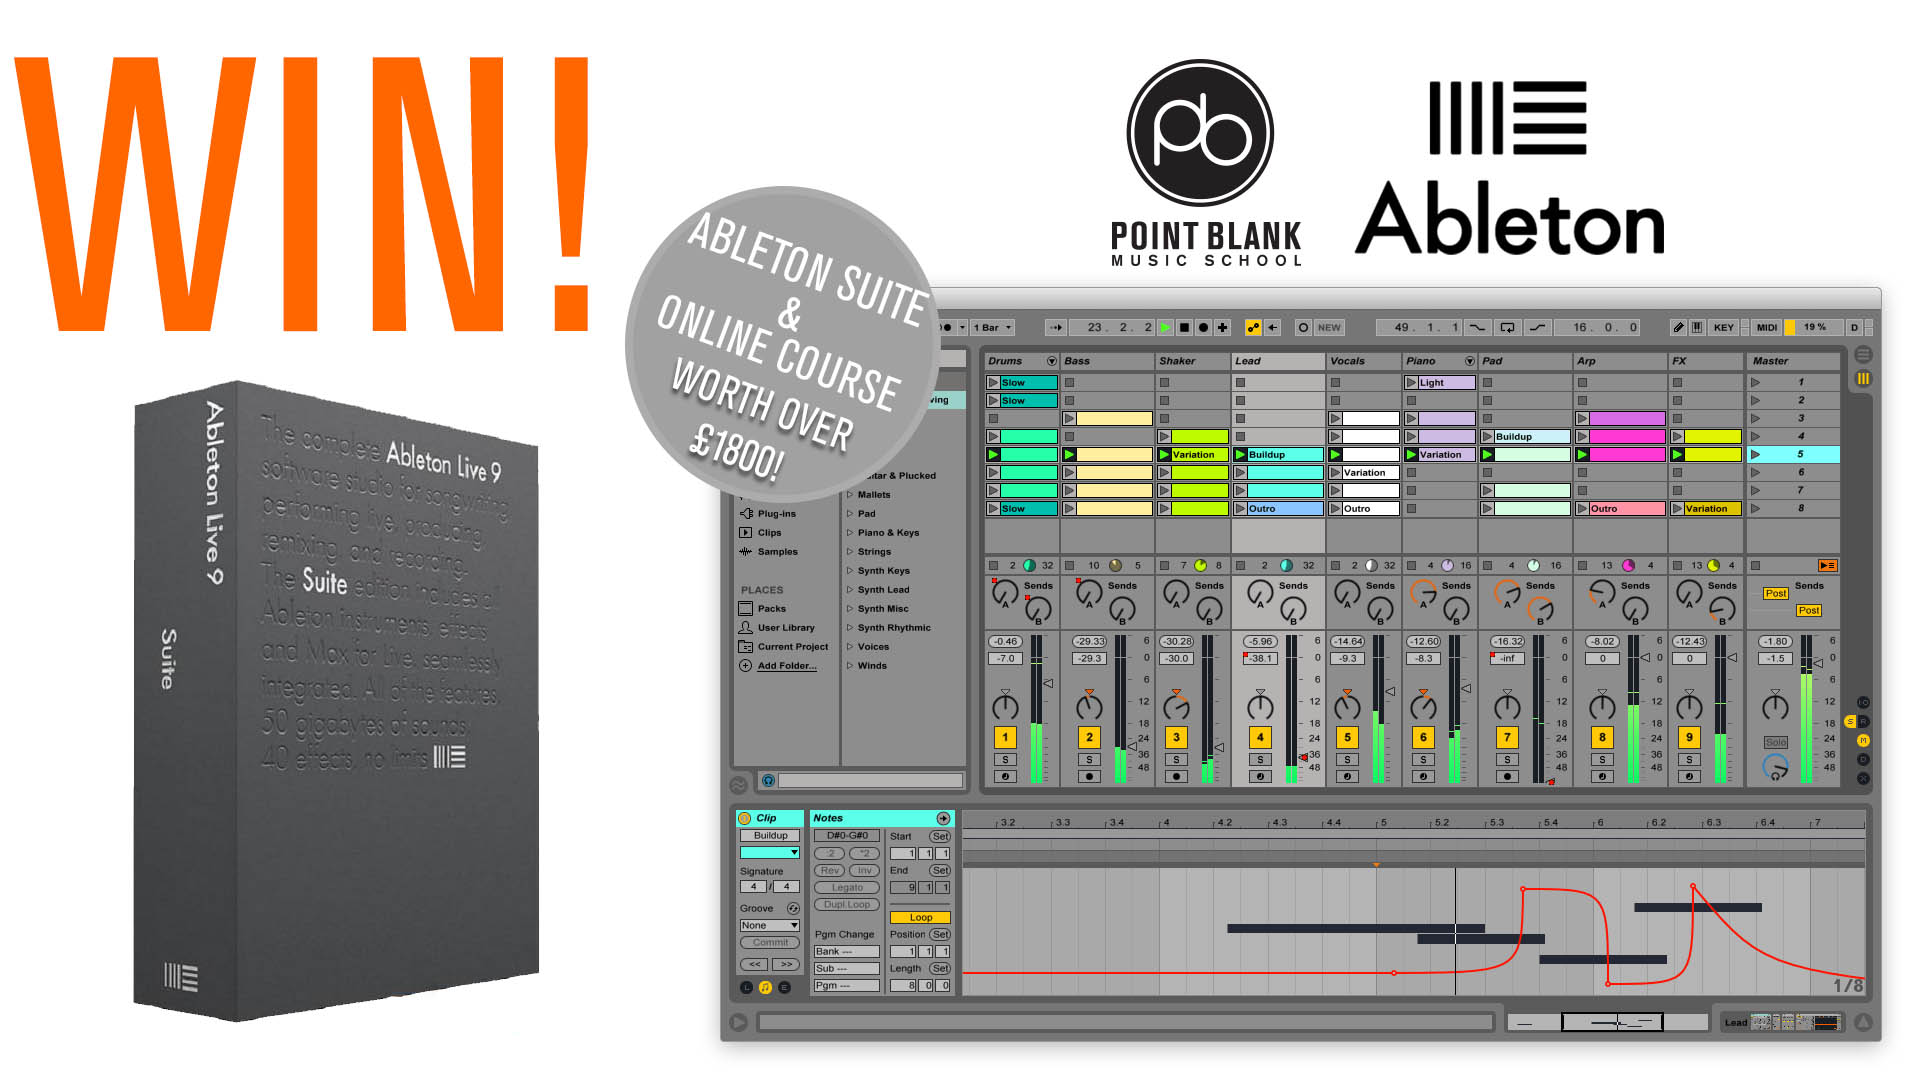 Subscribe to Point Blank Music and you could win a free copy of Ableton Suite & PB online course of your choosing.